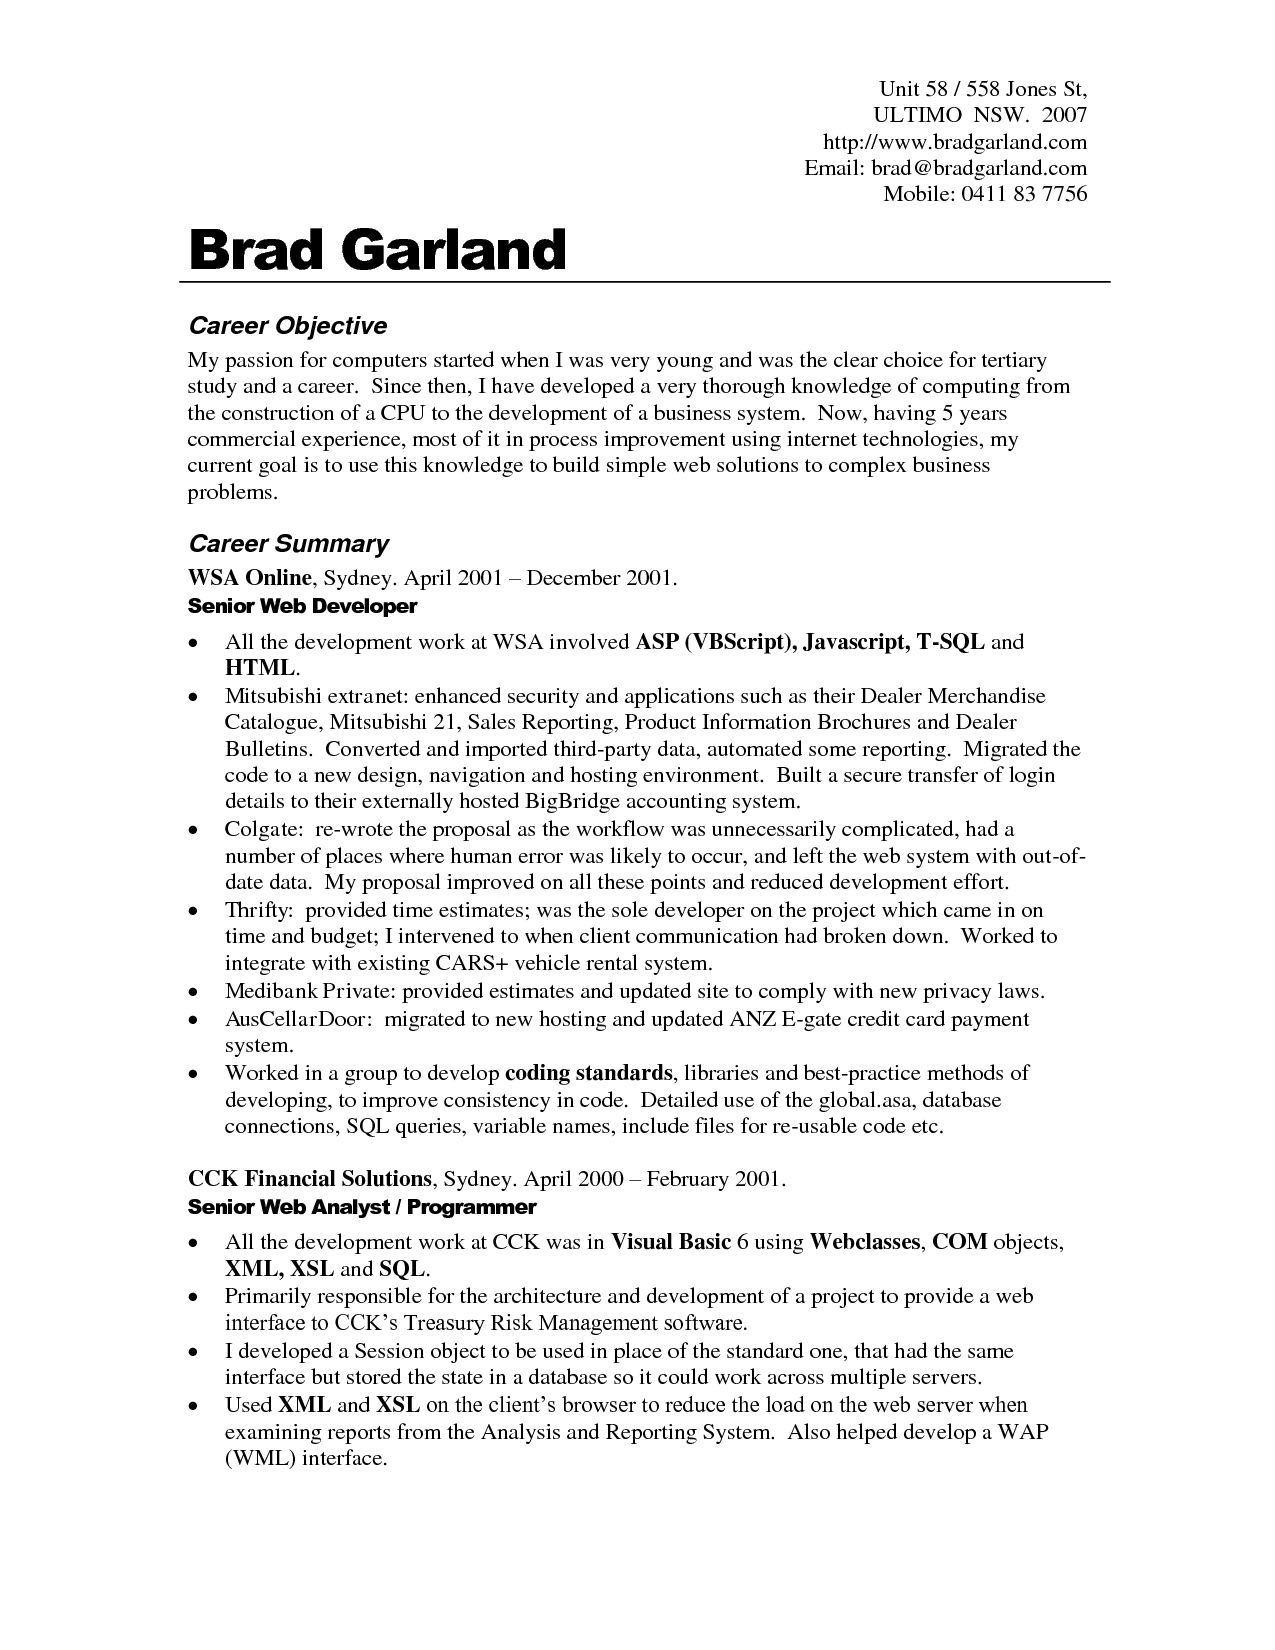 Good Career Objective Resume Best Resume Examples Job Objective  Sample Resume Entry Level And .